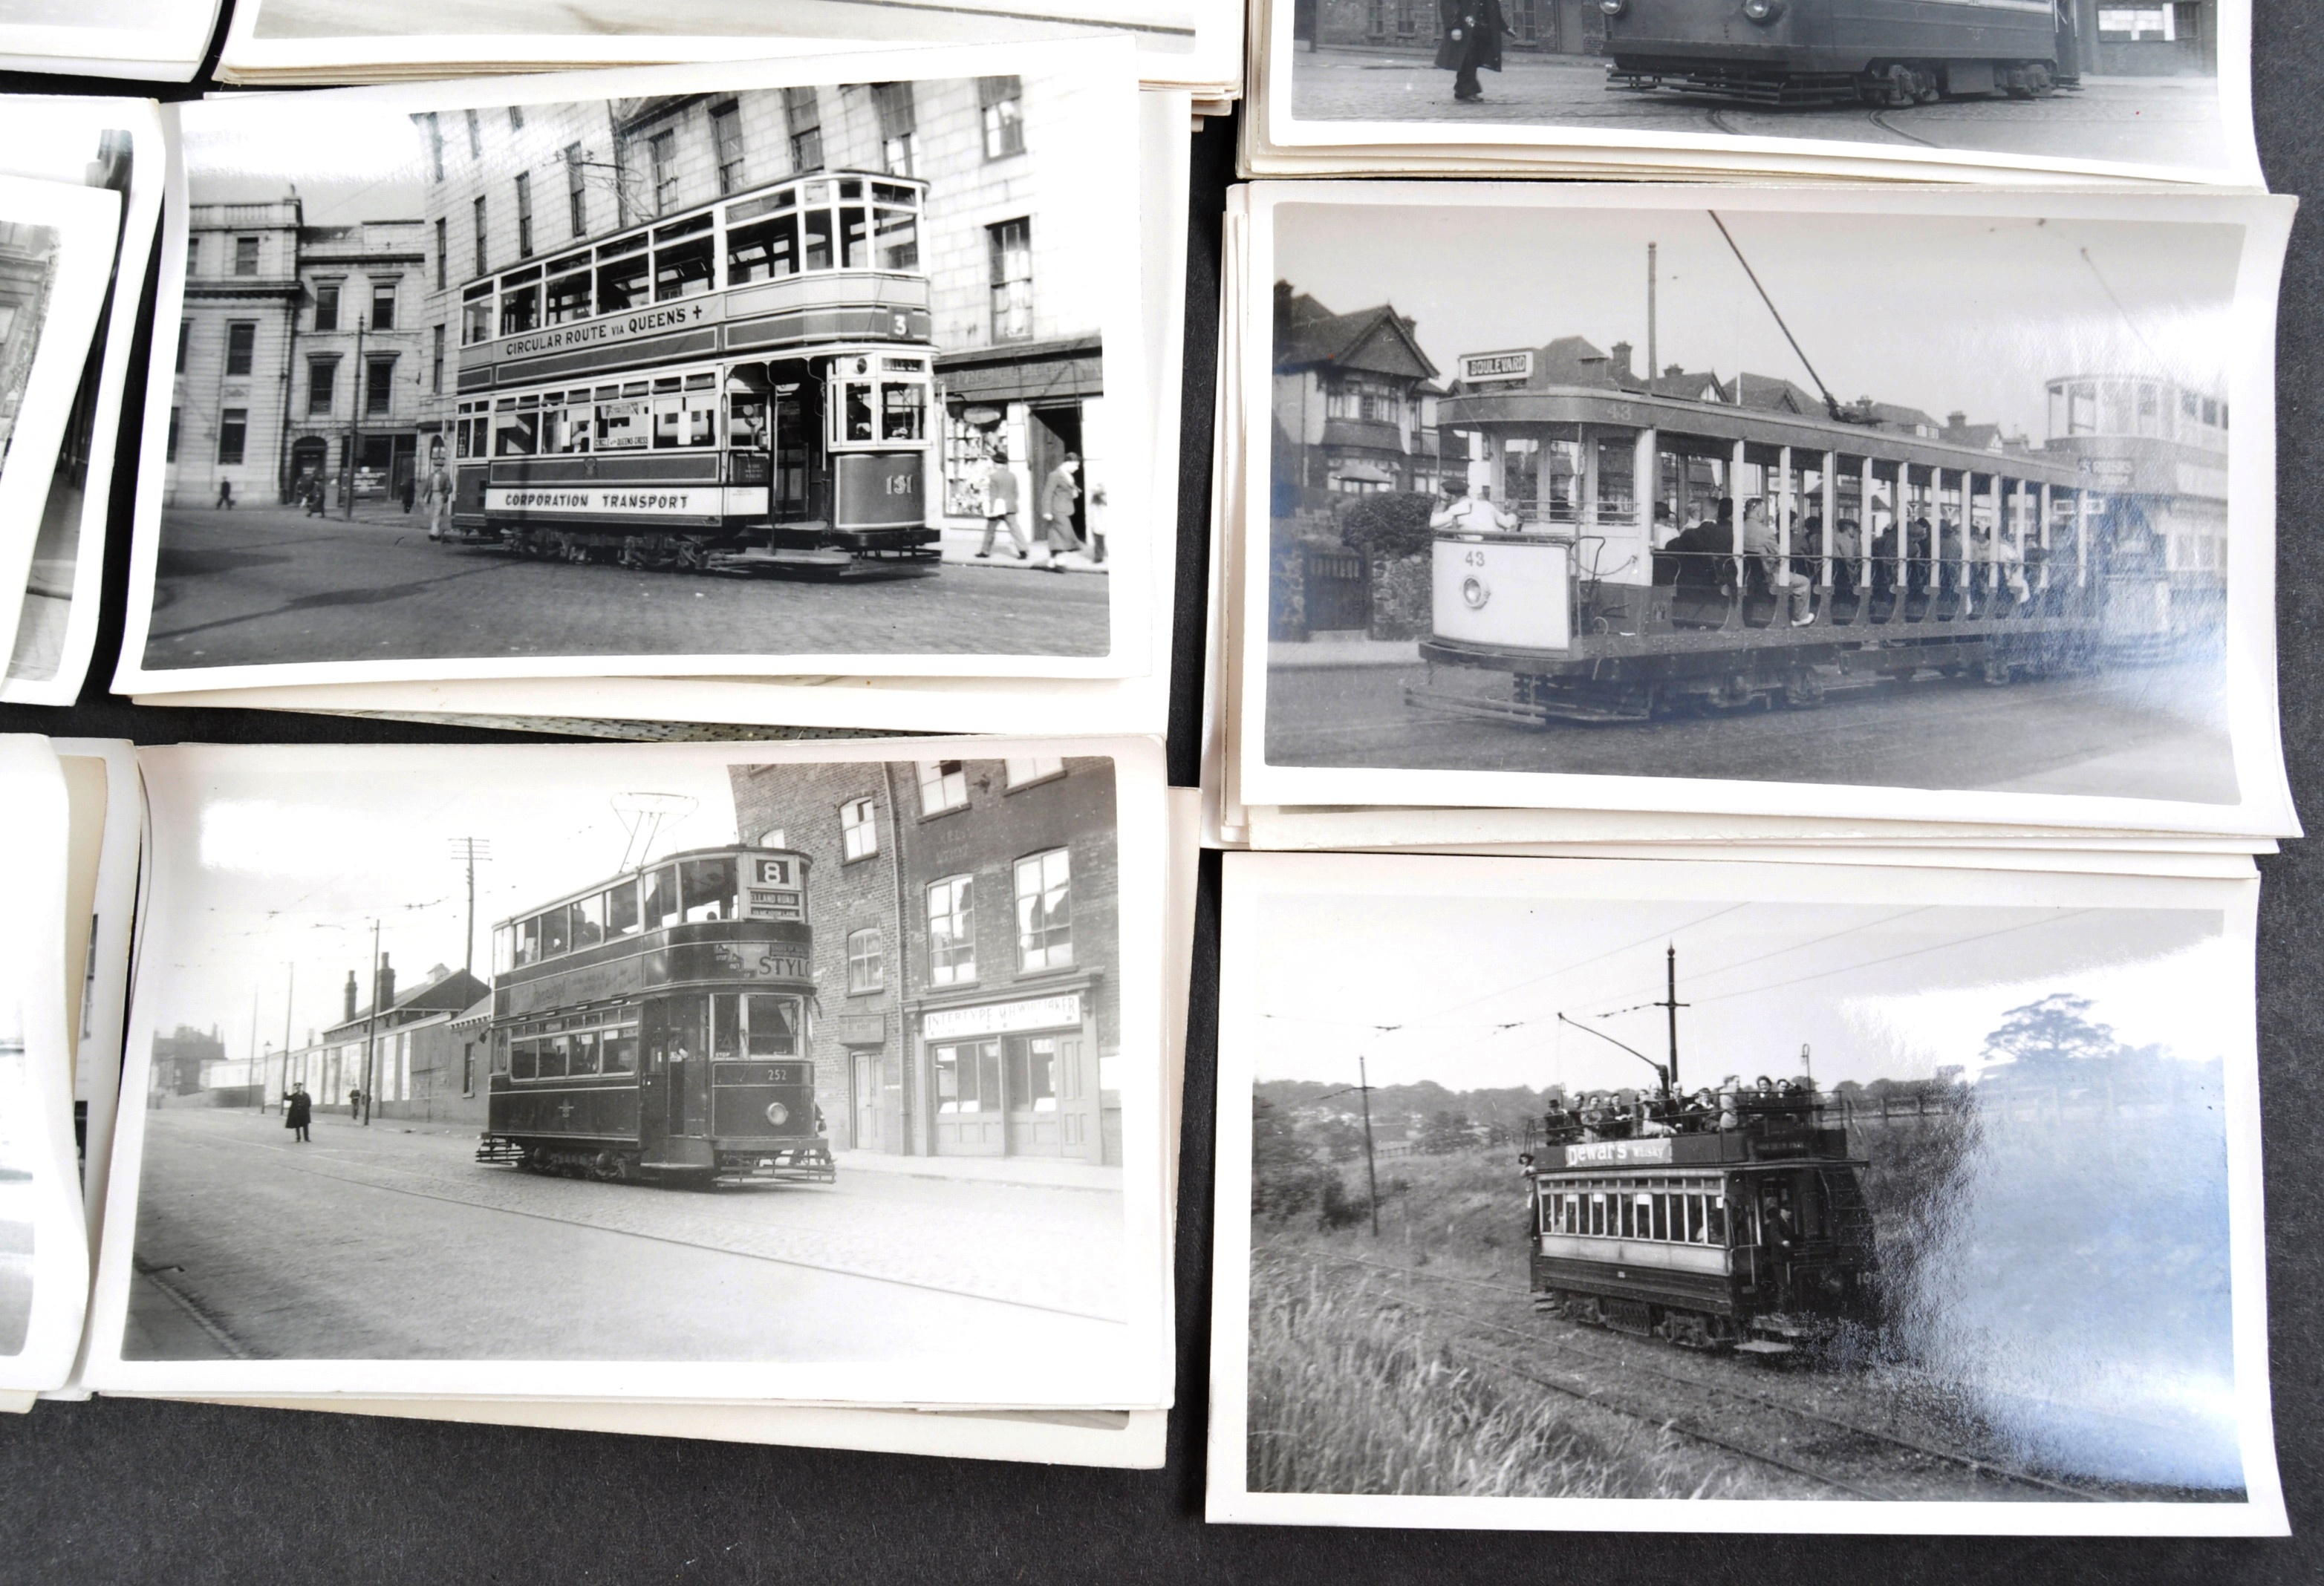 TRAMS & TROLLEY BUSES - LARGE COLLECTION OF BLACK AND WHITE PHOTOS - Image 2 of 9